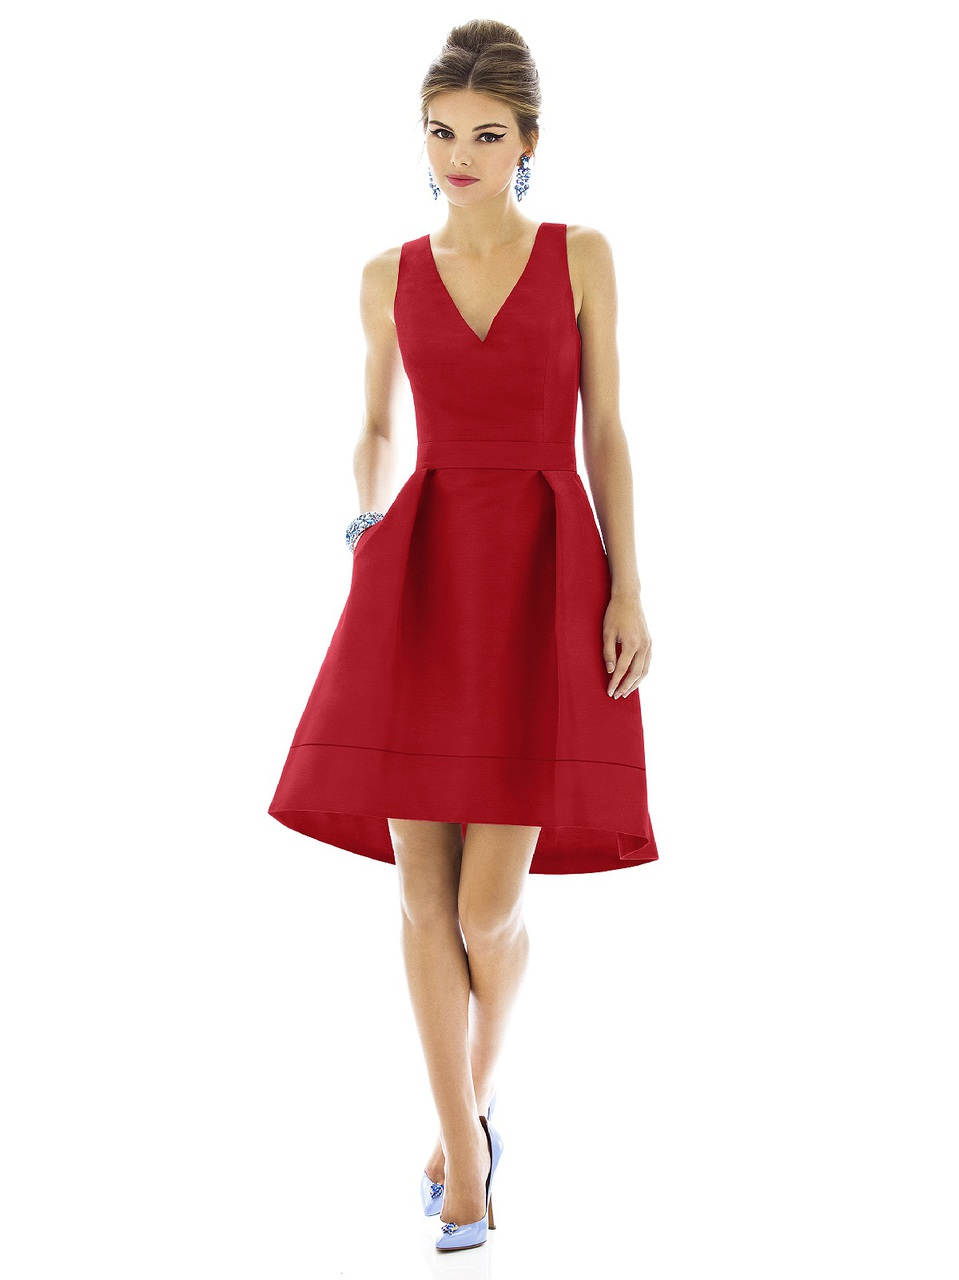 """Alfred Sung Style D588  Fabric: Peau De Soie Cocktail length v-neck peau de soie dress w/ matching 1.5"""" belt at natural waist and subtle hi-low hem. Pleated skirt has pockets at side seams. Front skirt is approx. 22.5"""" from natural waist to hem. Also available full length as style D589."""